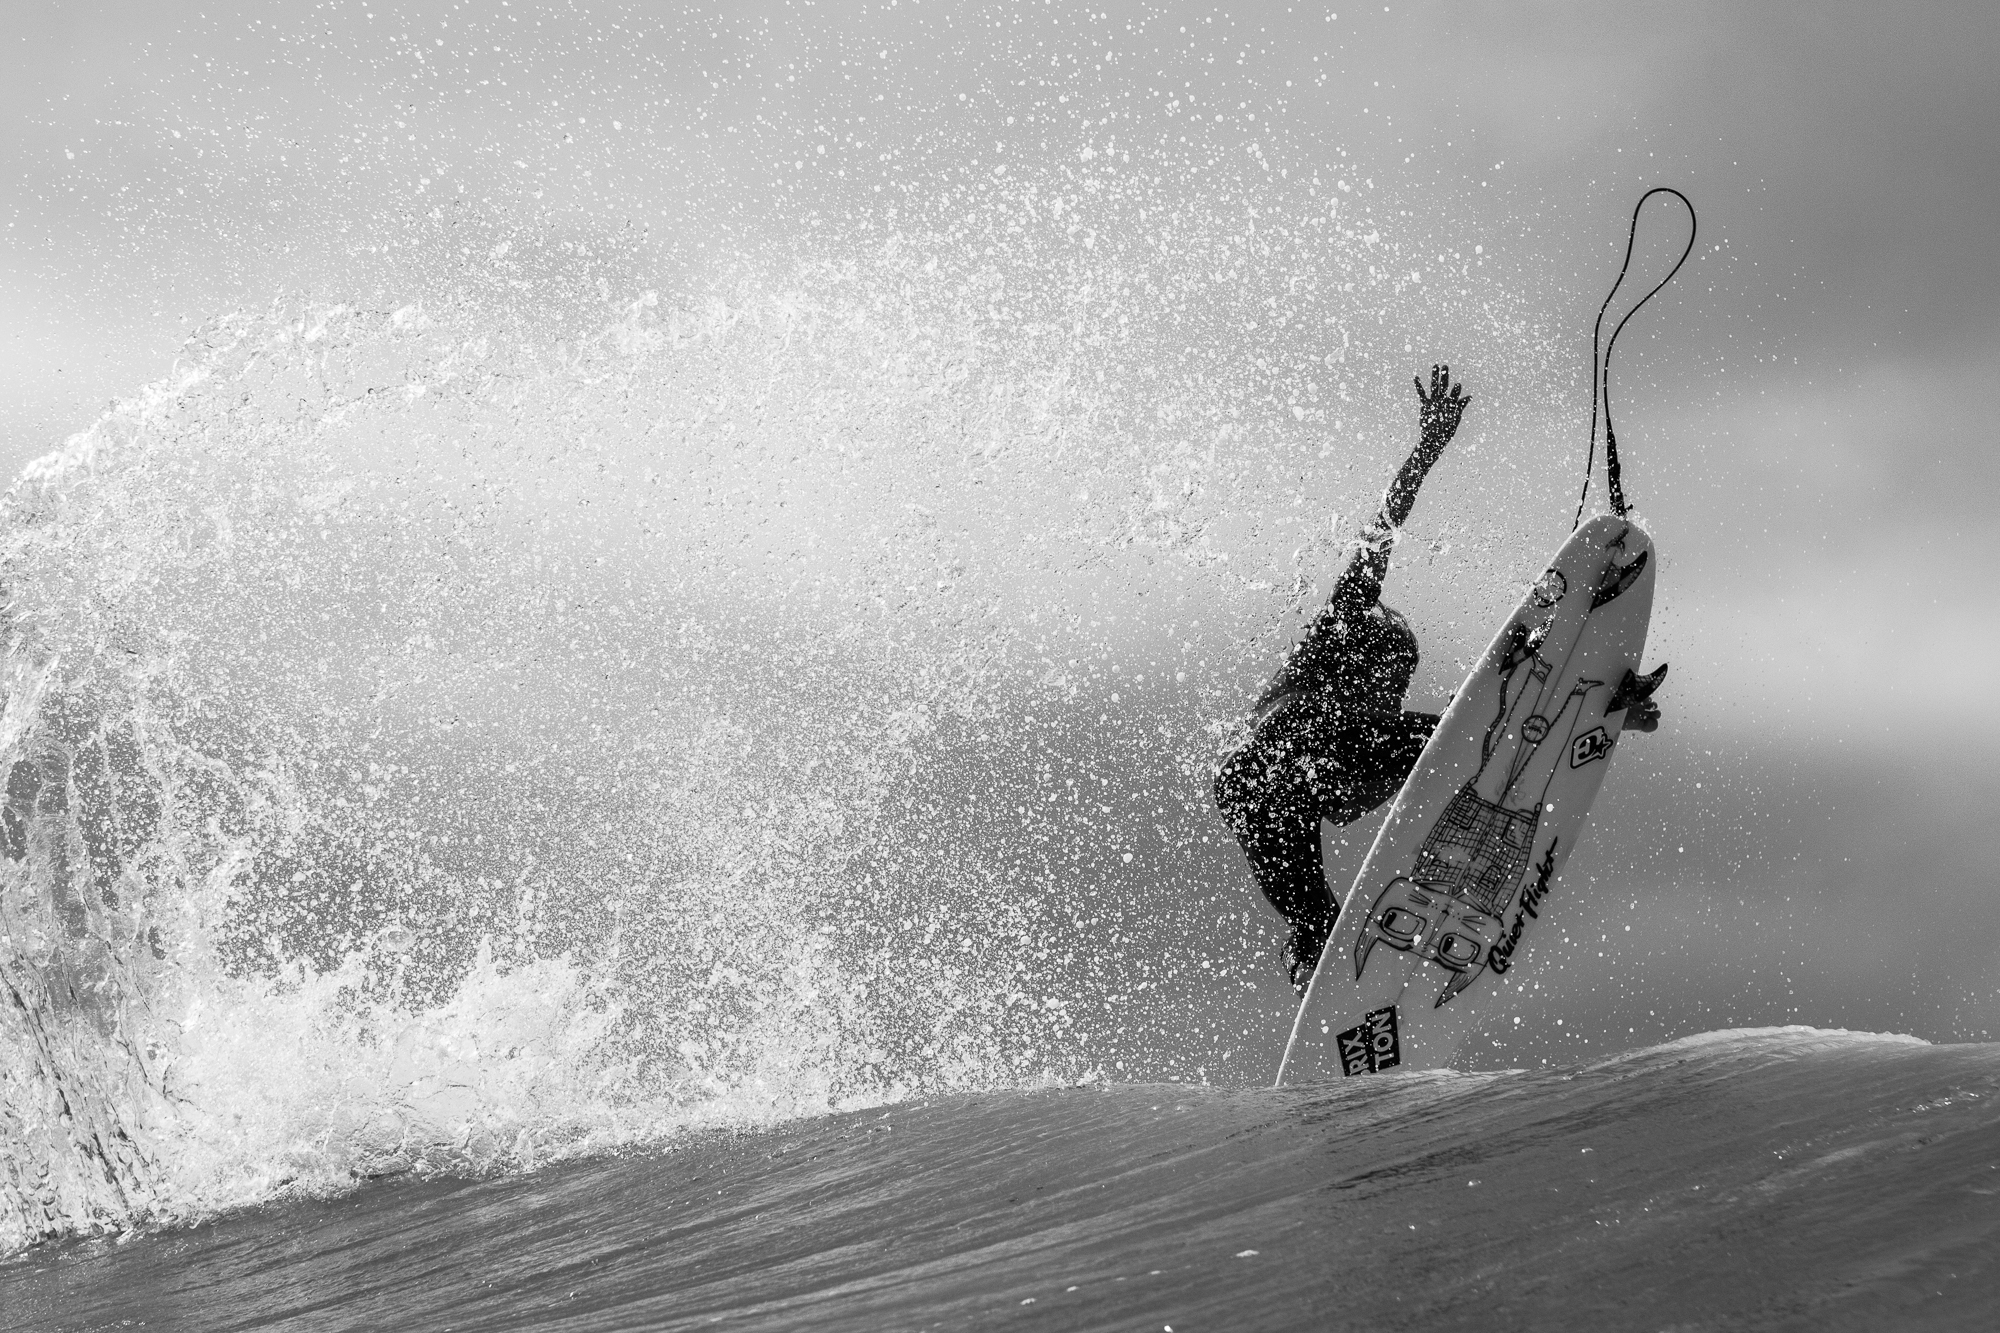 Matthew Glenn has been killing it at Lowers.